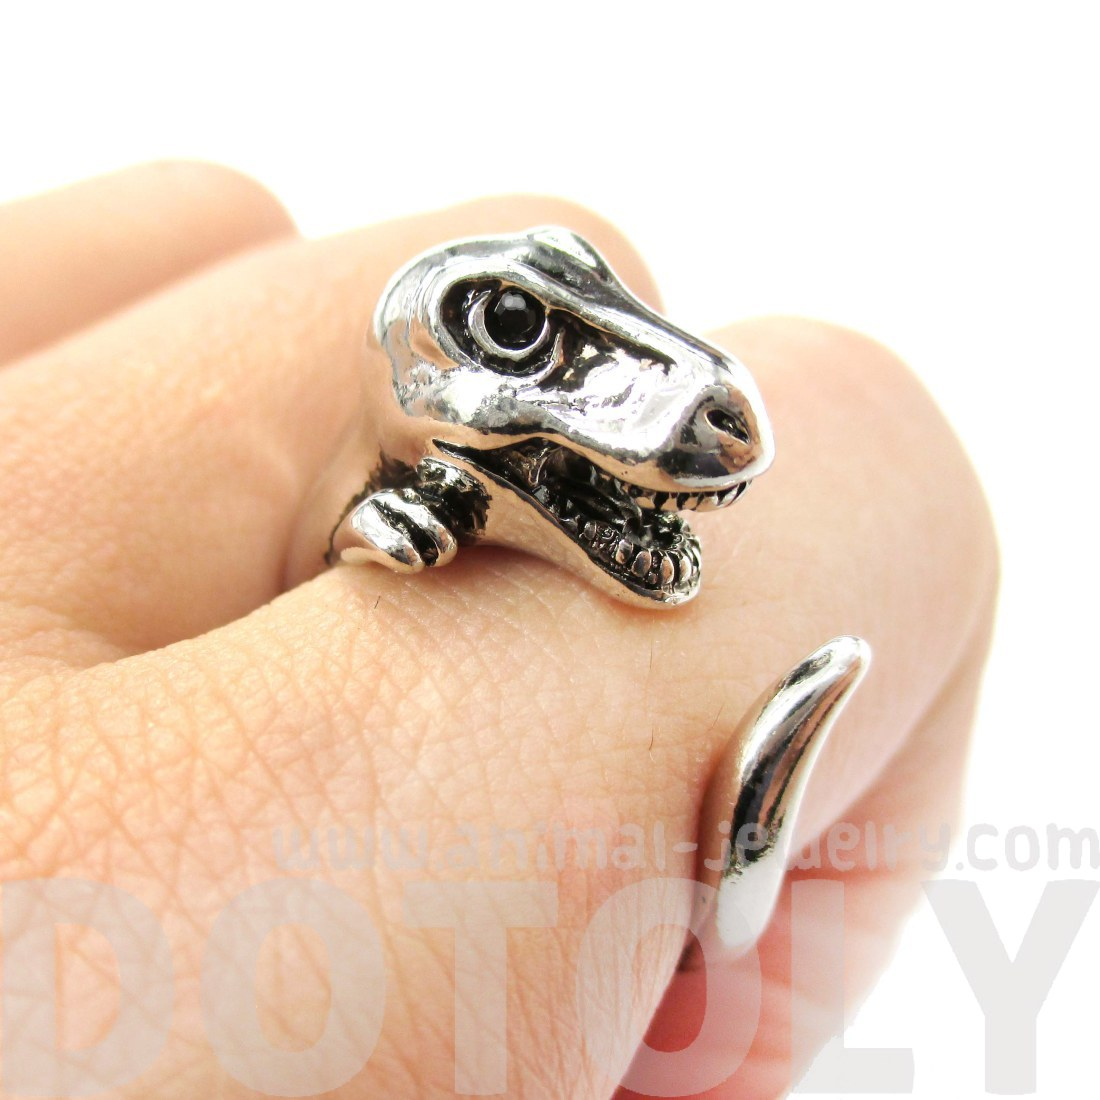 rings silver hileman bone disposition alloworigin accesskeyid dinosaur by jewelry